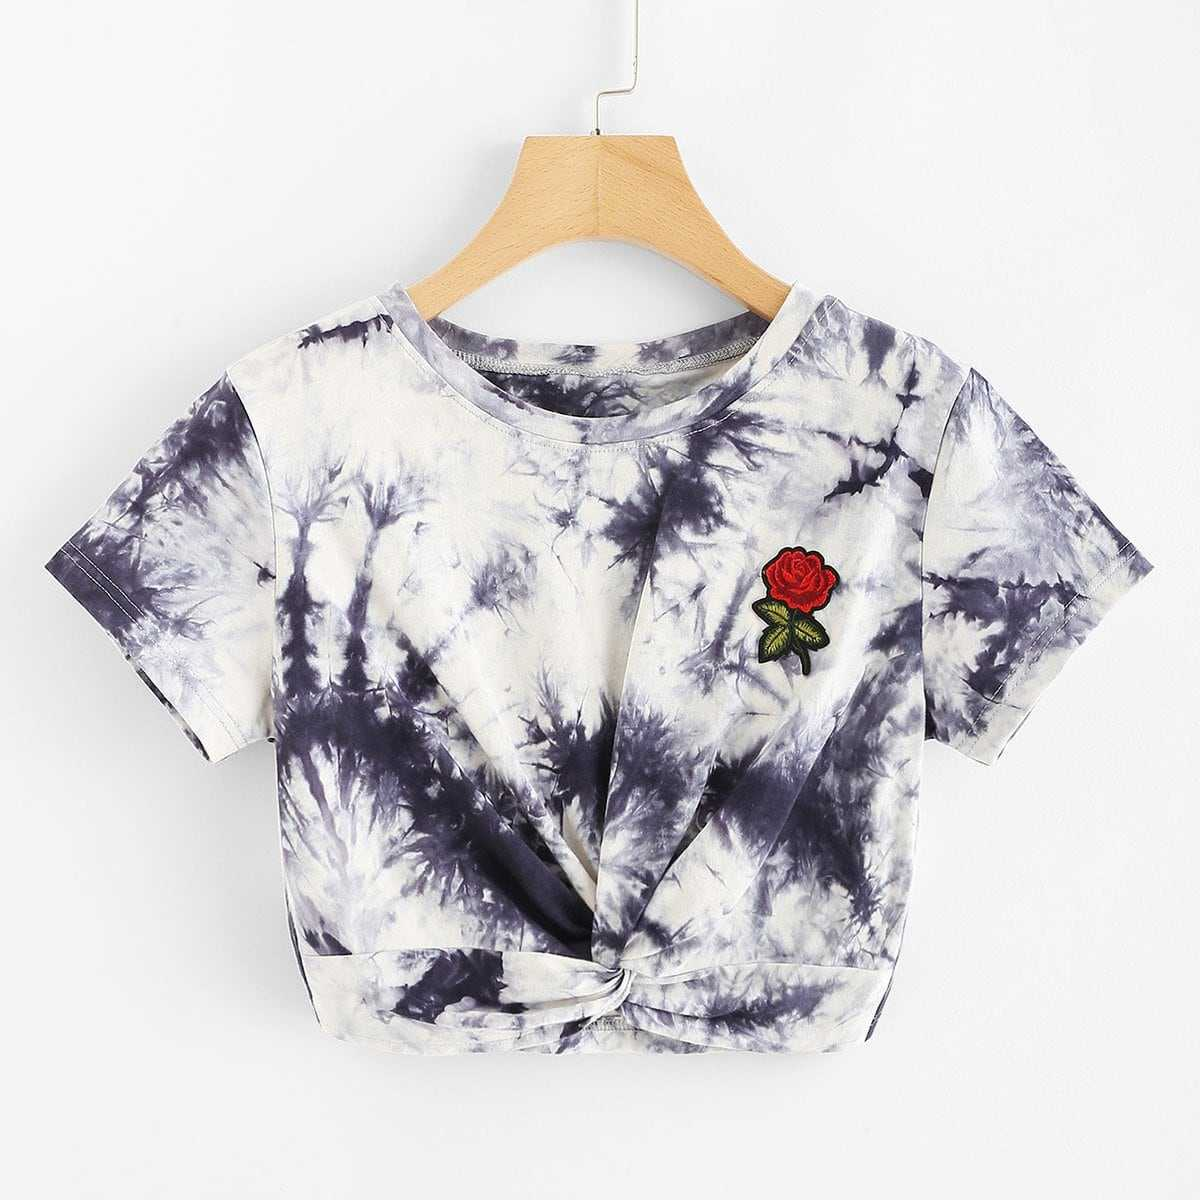 Embroidered Applique Twist Front Tie Dye Tee in Multicolor by ROMWE on GOOFASH